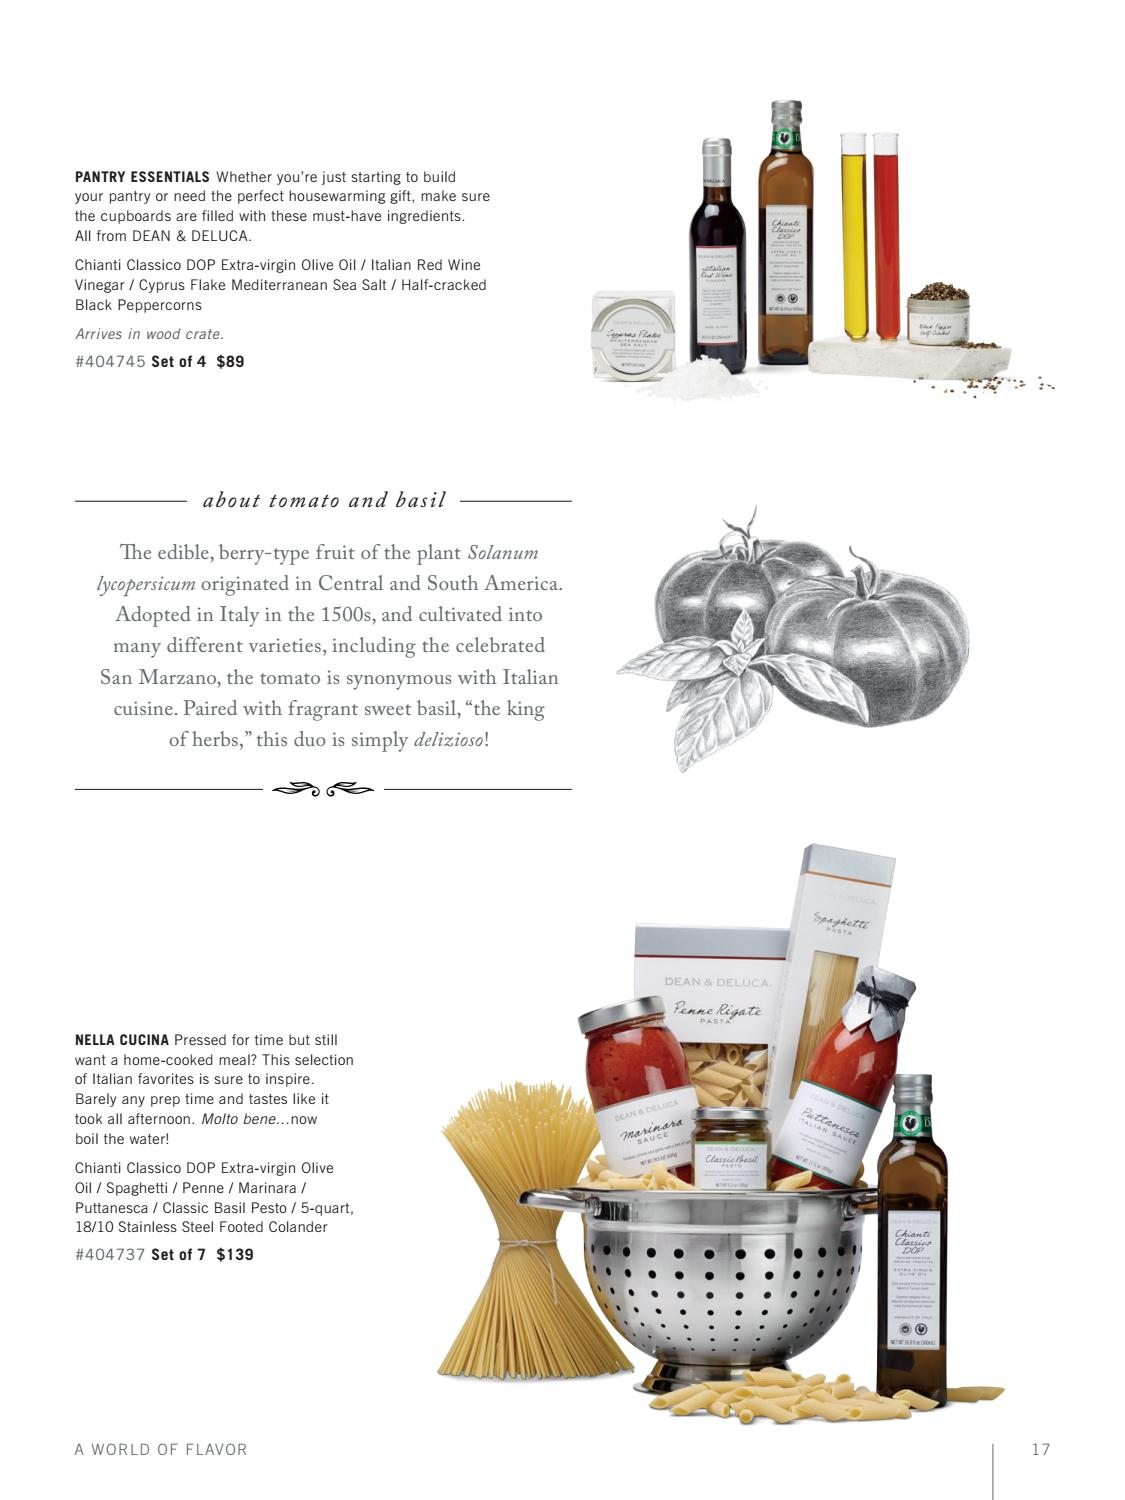 Nella Cucina Products Dean Deluca Corporate Gifting Fall 2016 Spring 2017 By Dean